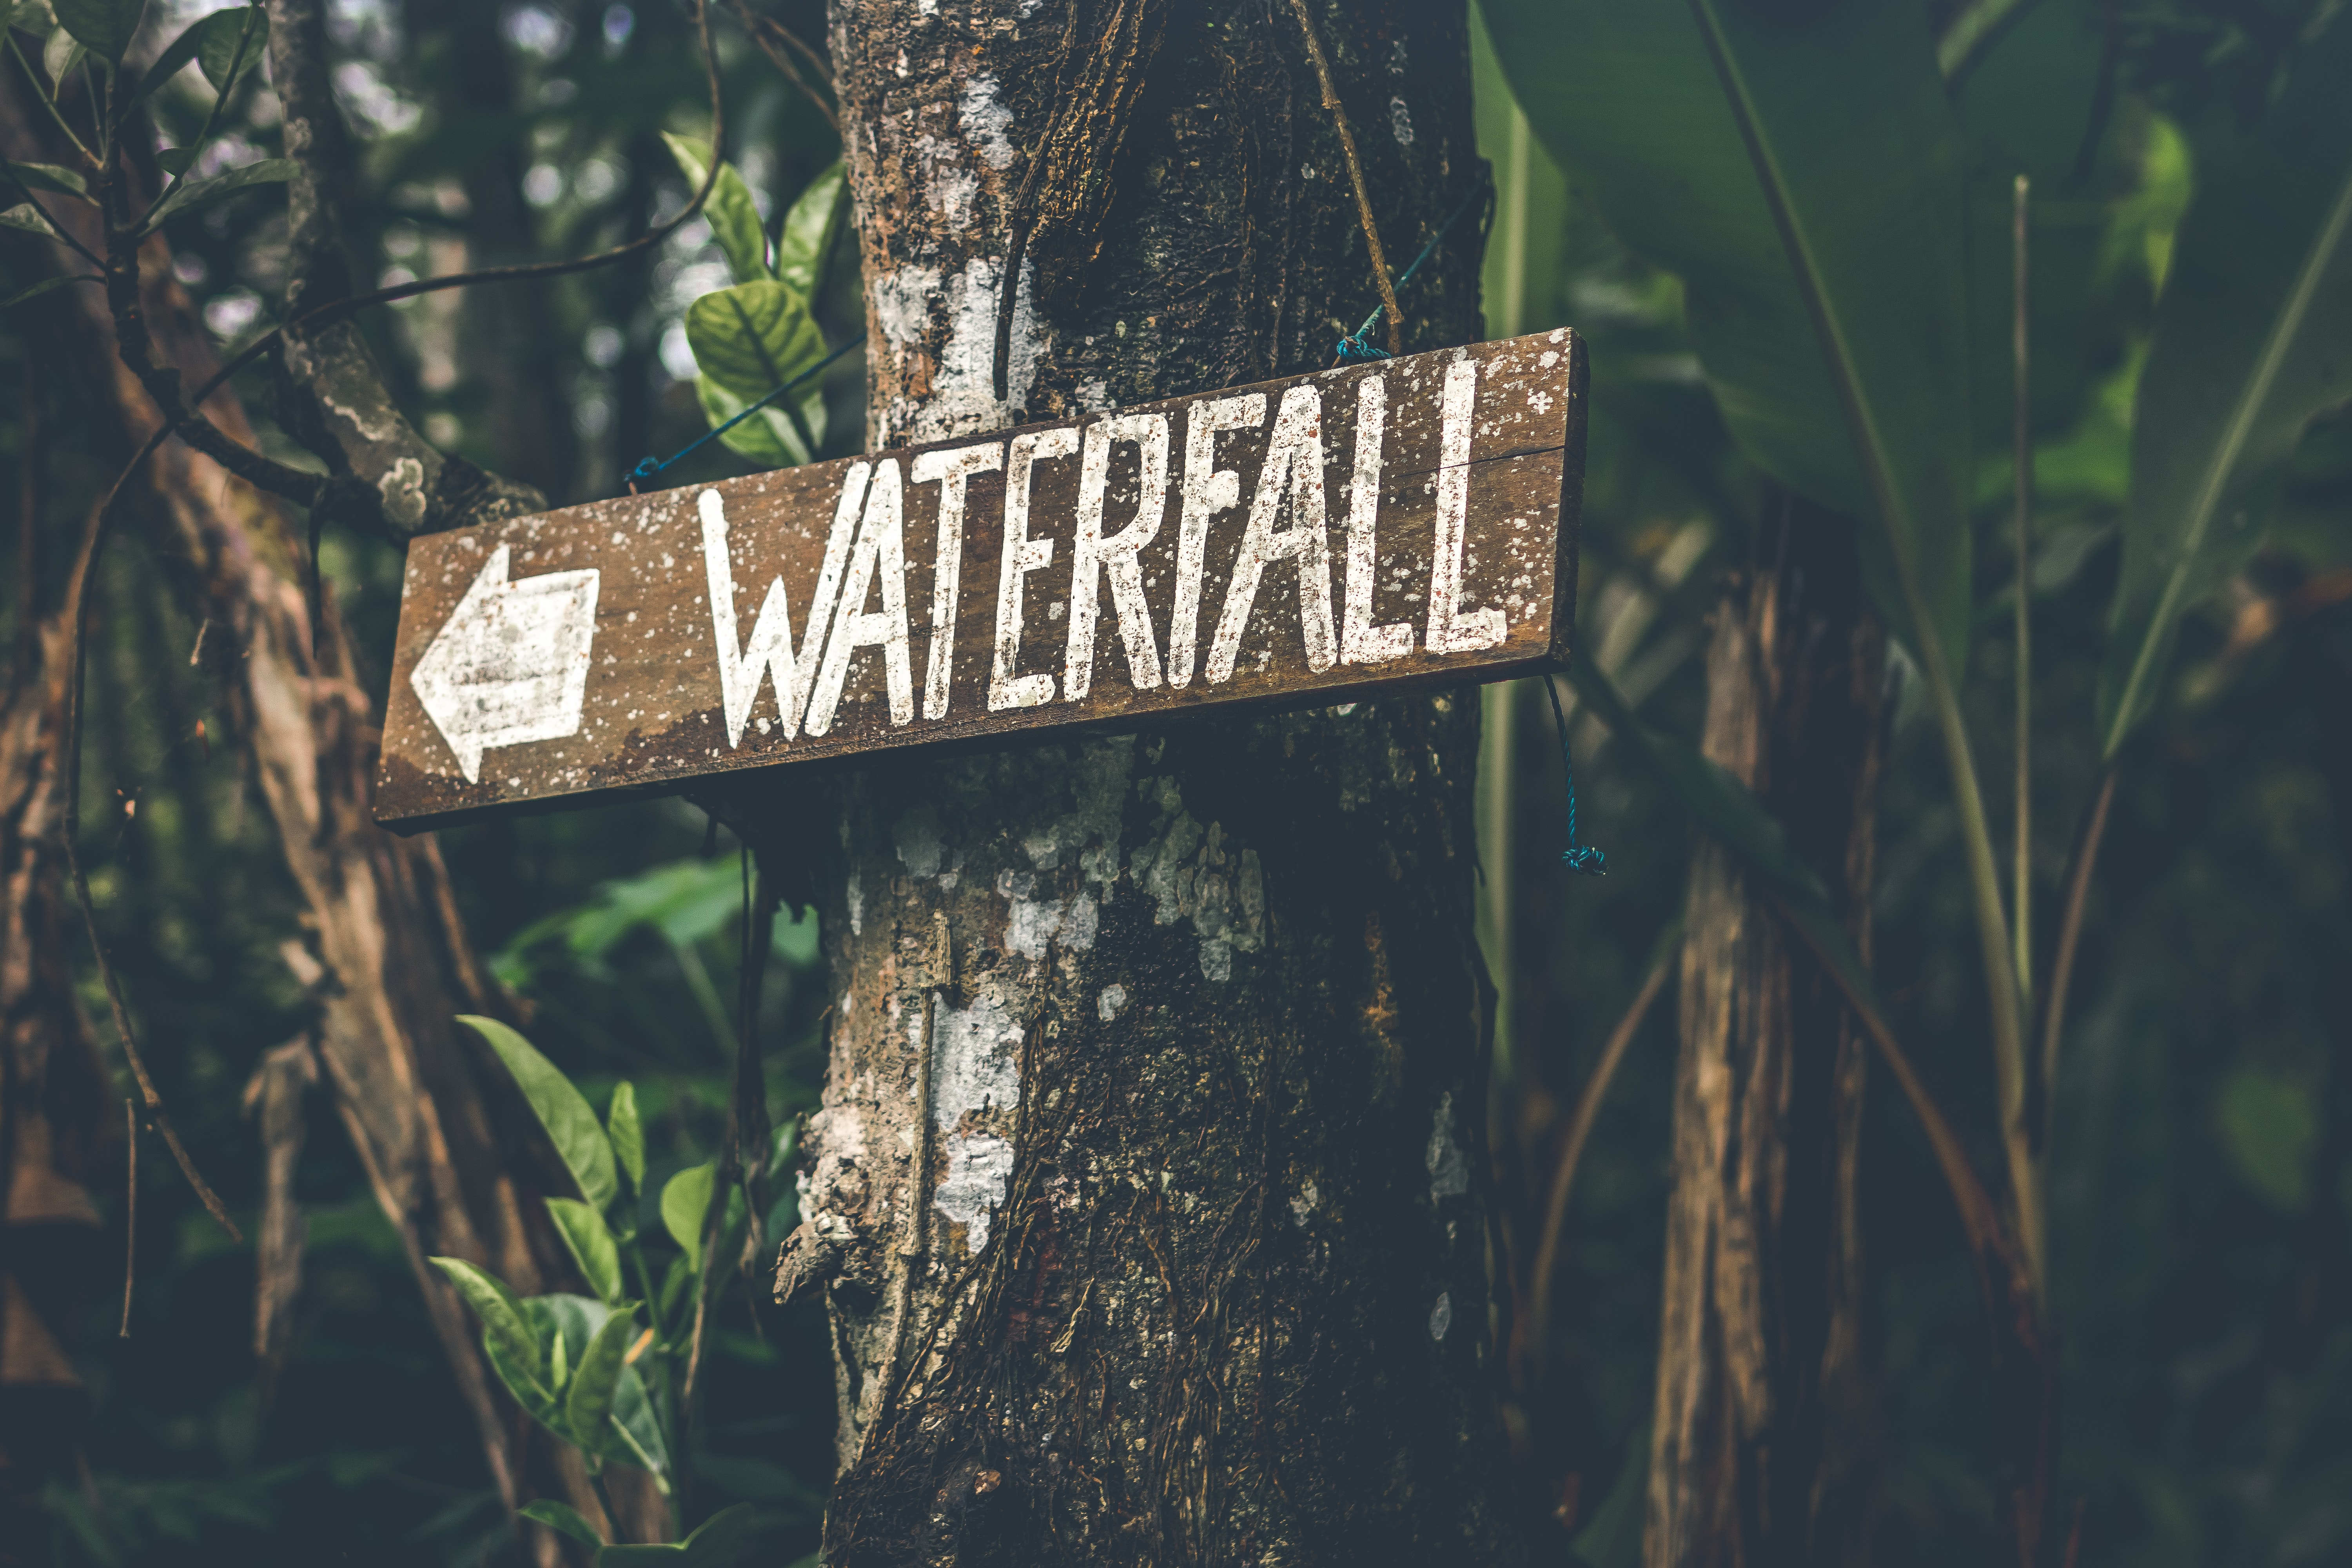 brown and white wooden waterfall sign on brown tree stem